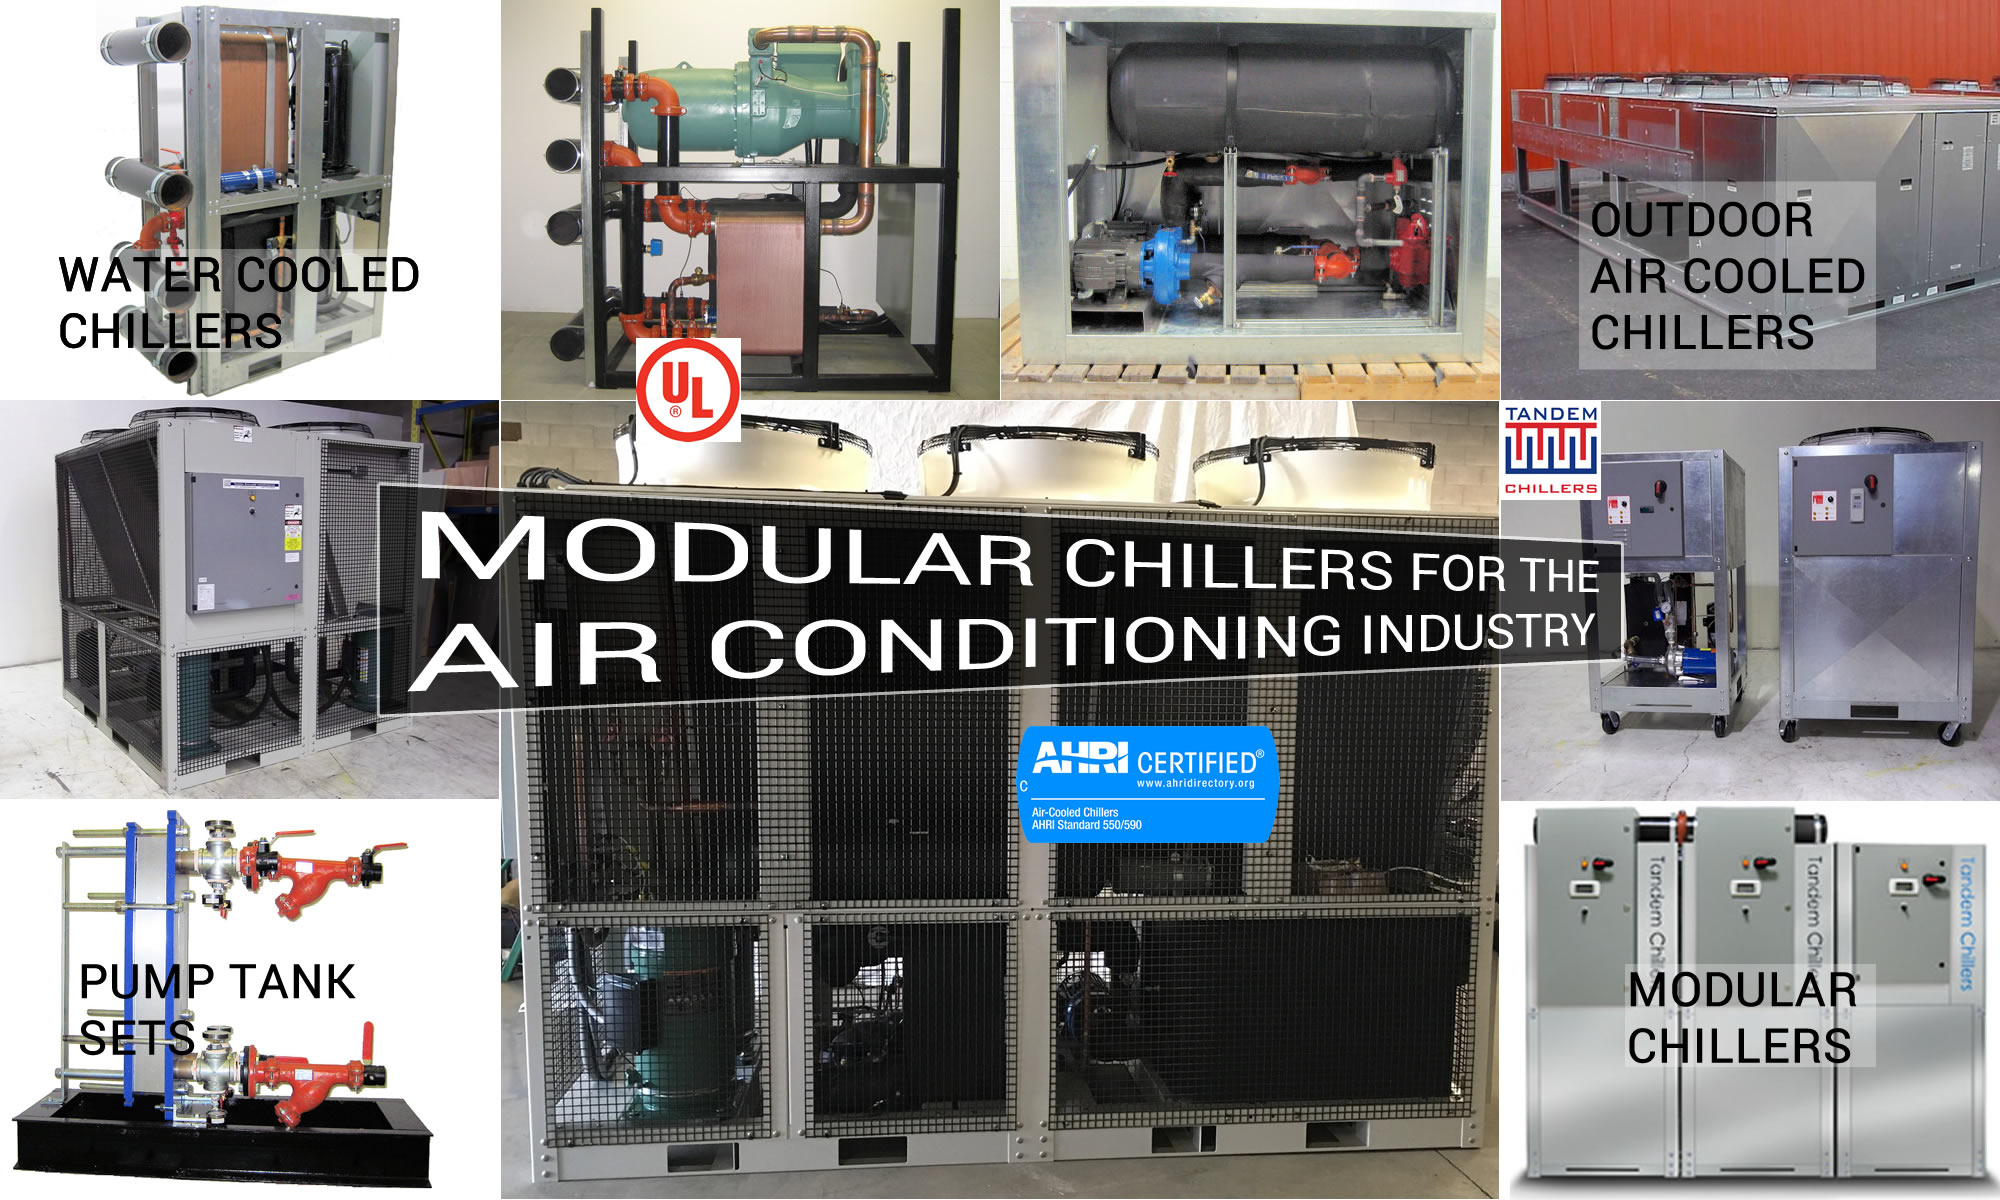 Modular Chillers